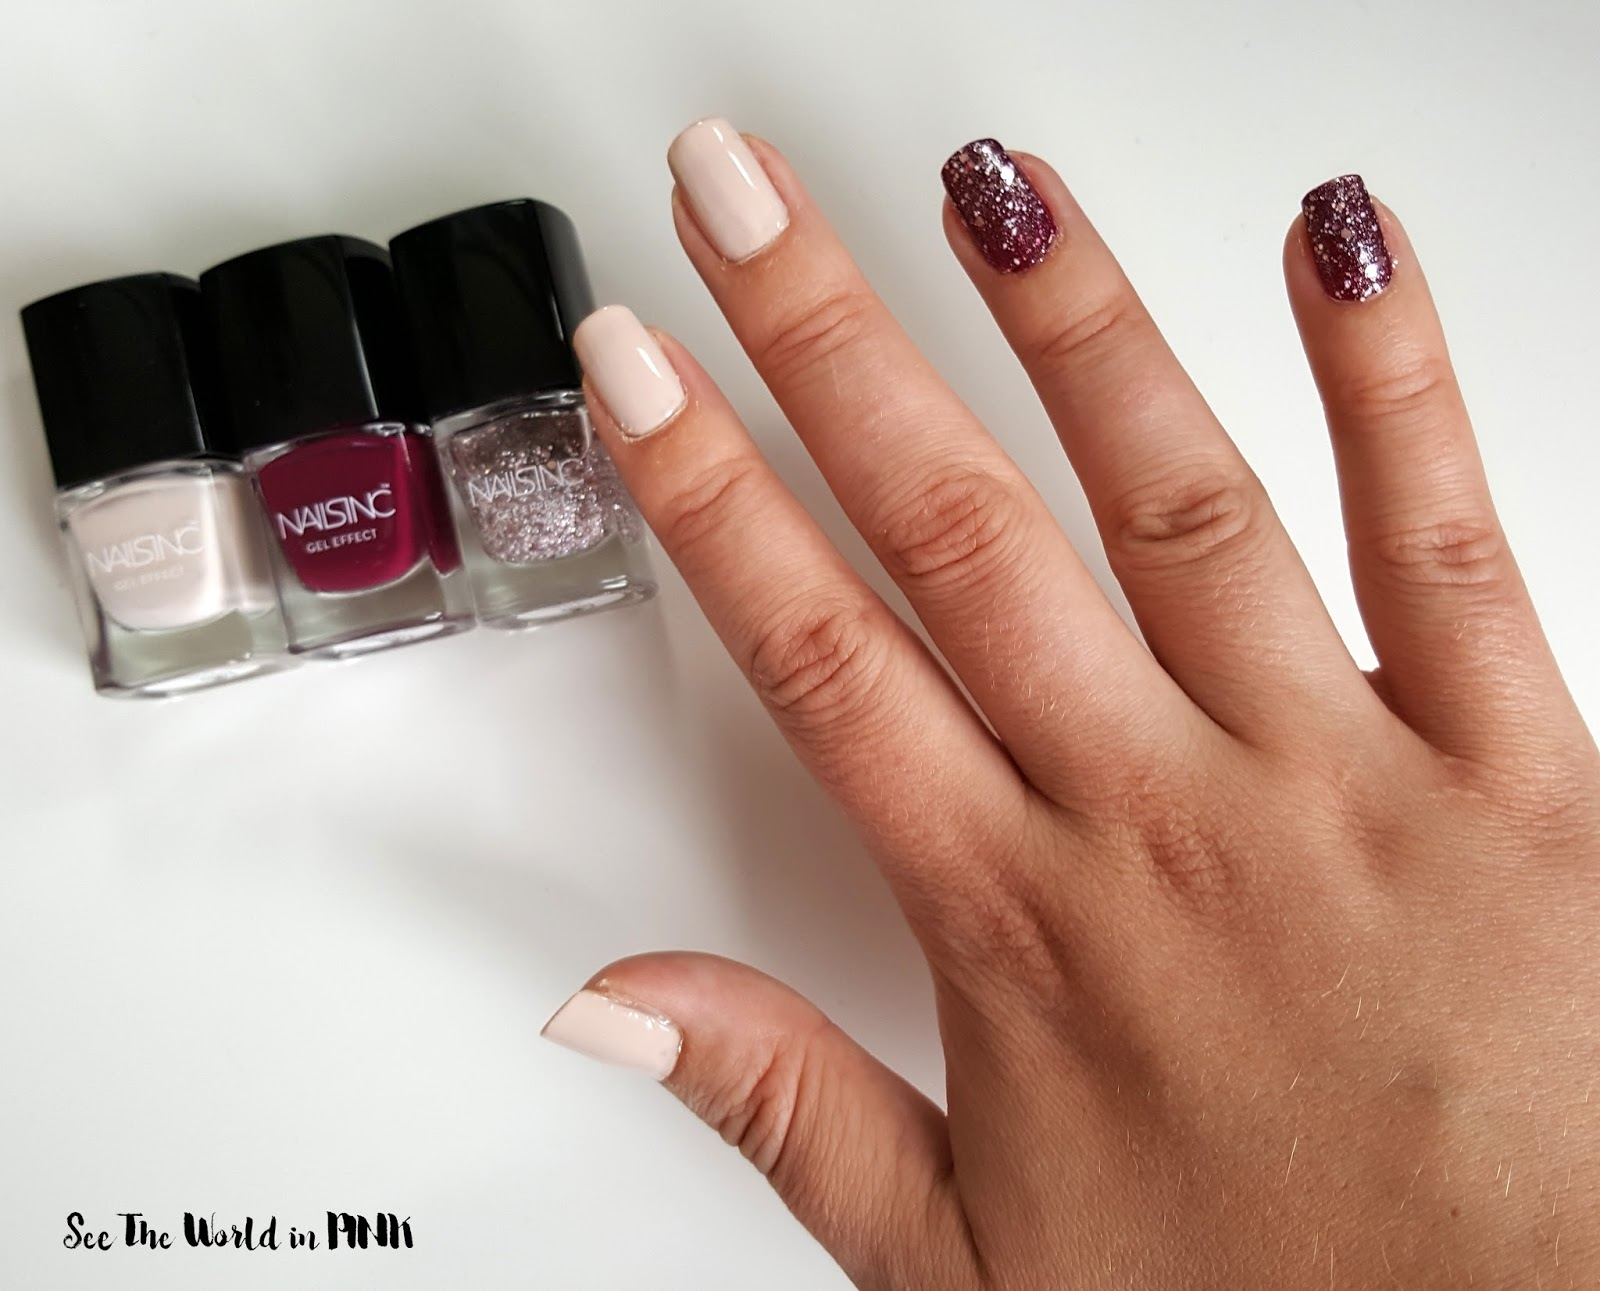 Manicure Tuesday - Nails Inc. The Holiday Edit 3 Piece Mini Set